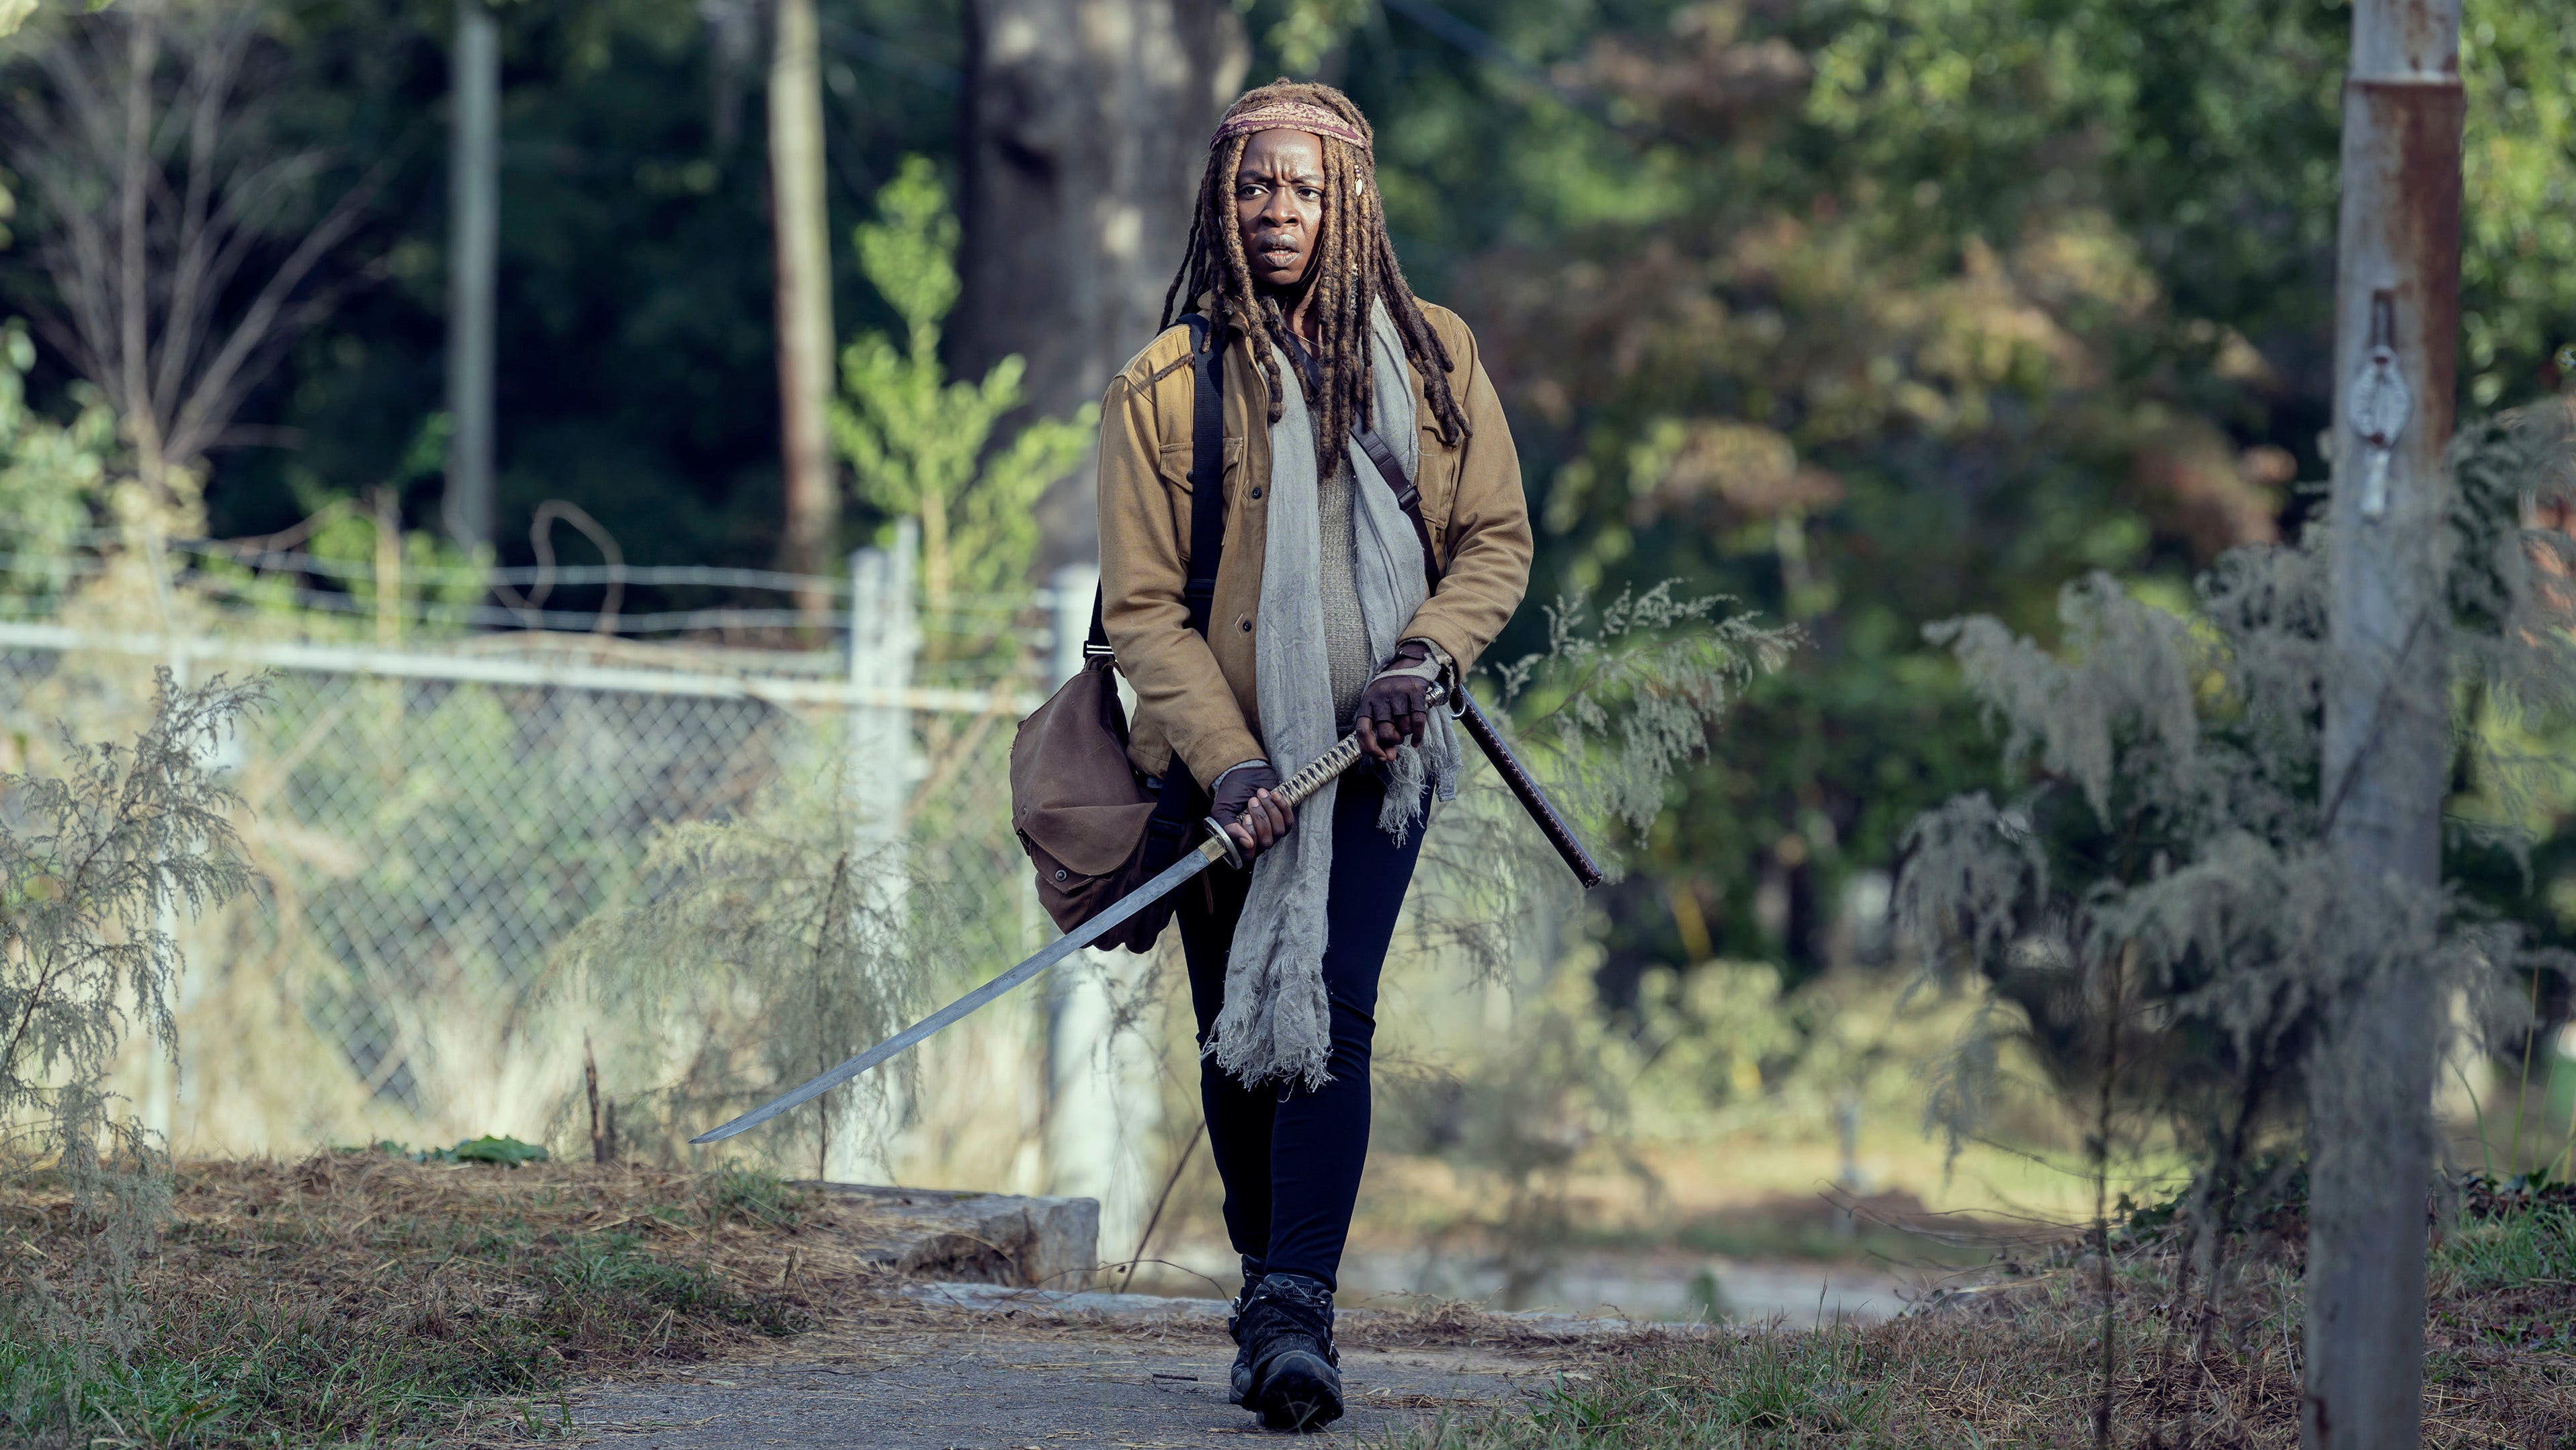 amc io9 the-walking-dead tv-recap walkingdeadrecap zombies